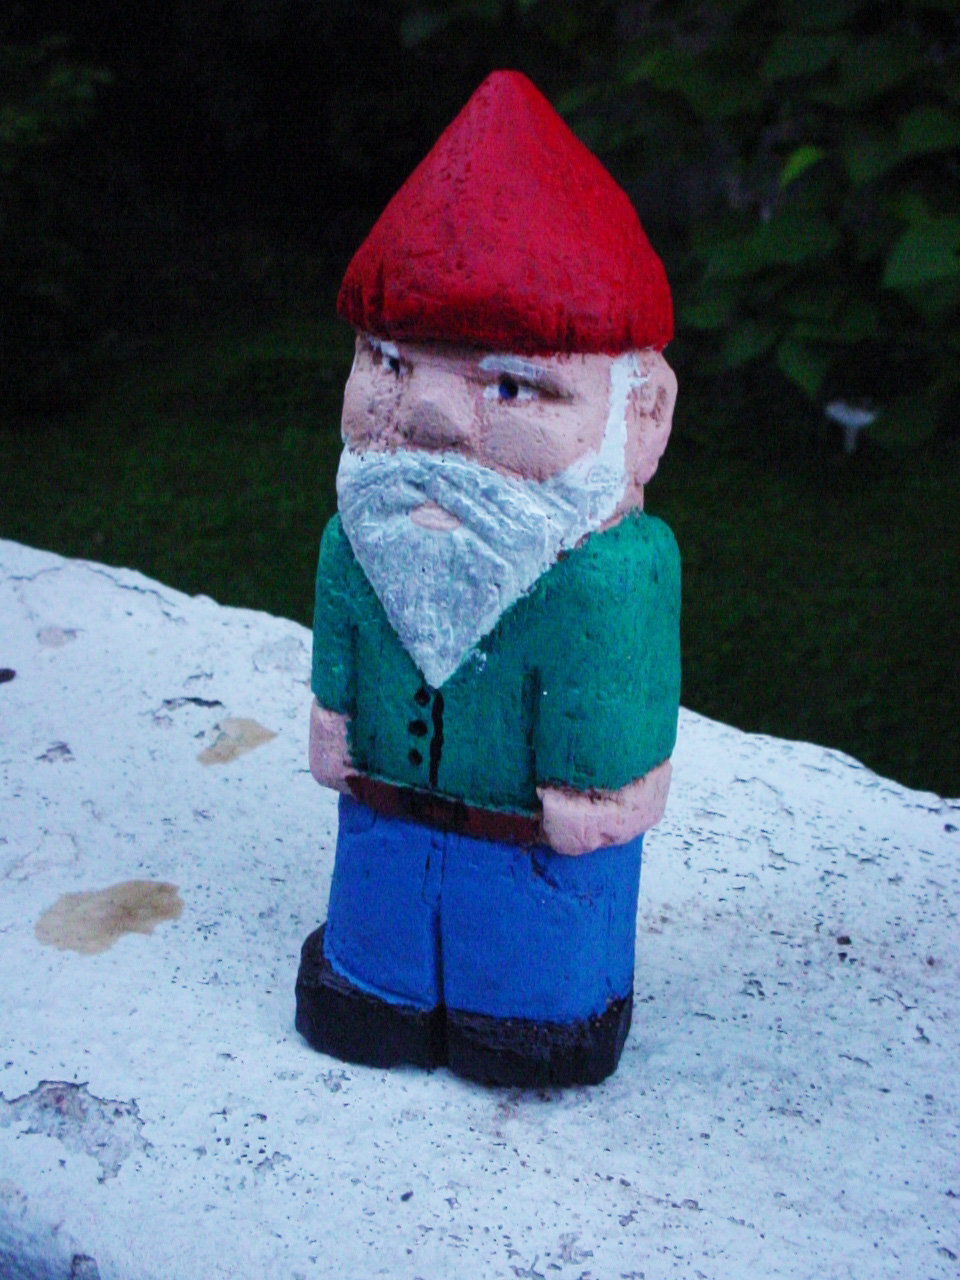 My first attempt at gnome carving